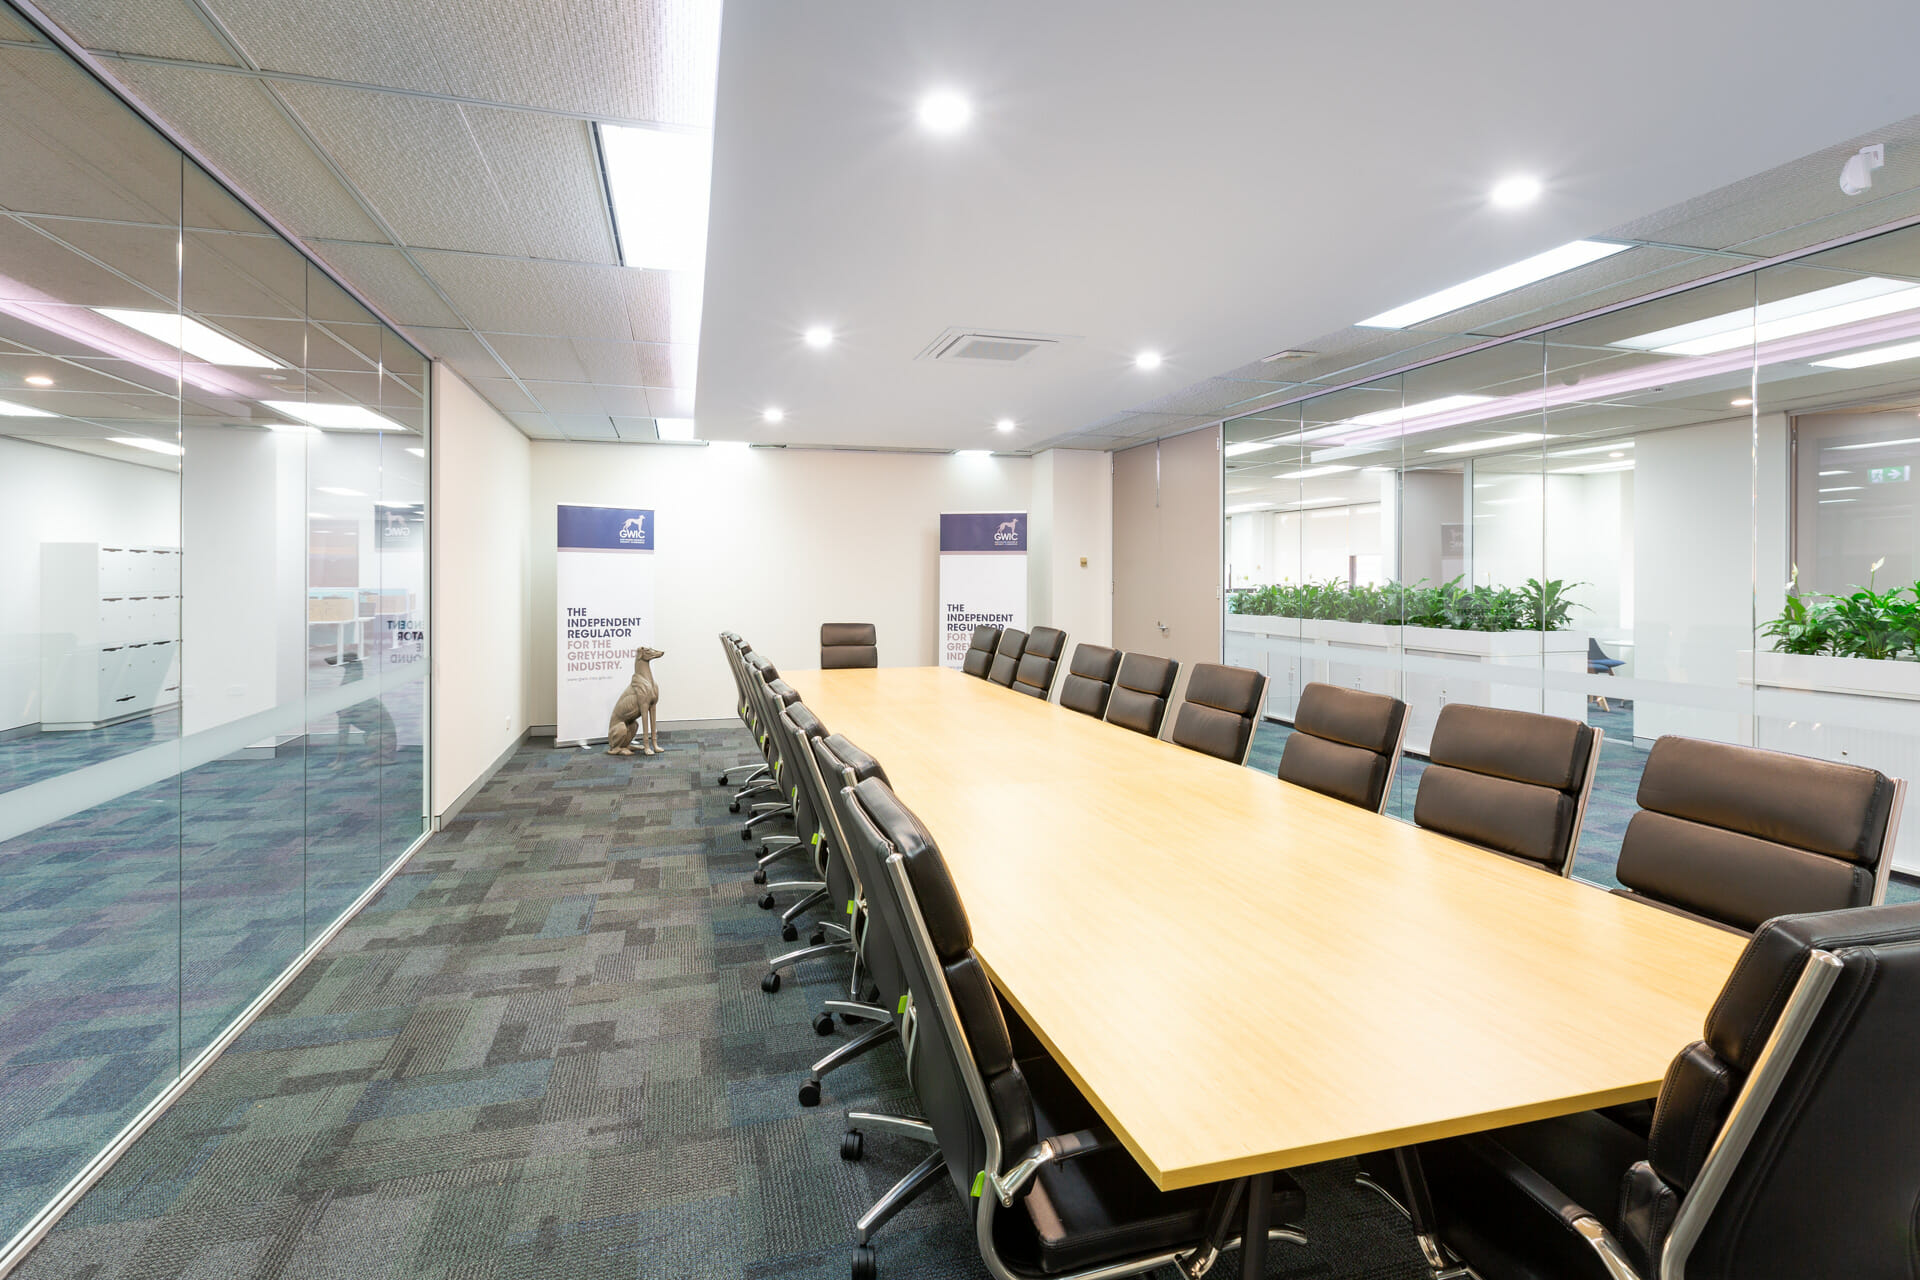 a government fitout project for Greyhound Welfare and Integrity Commission